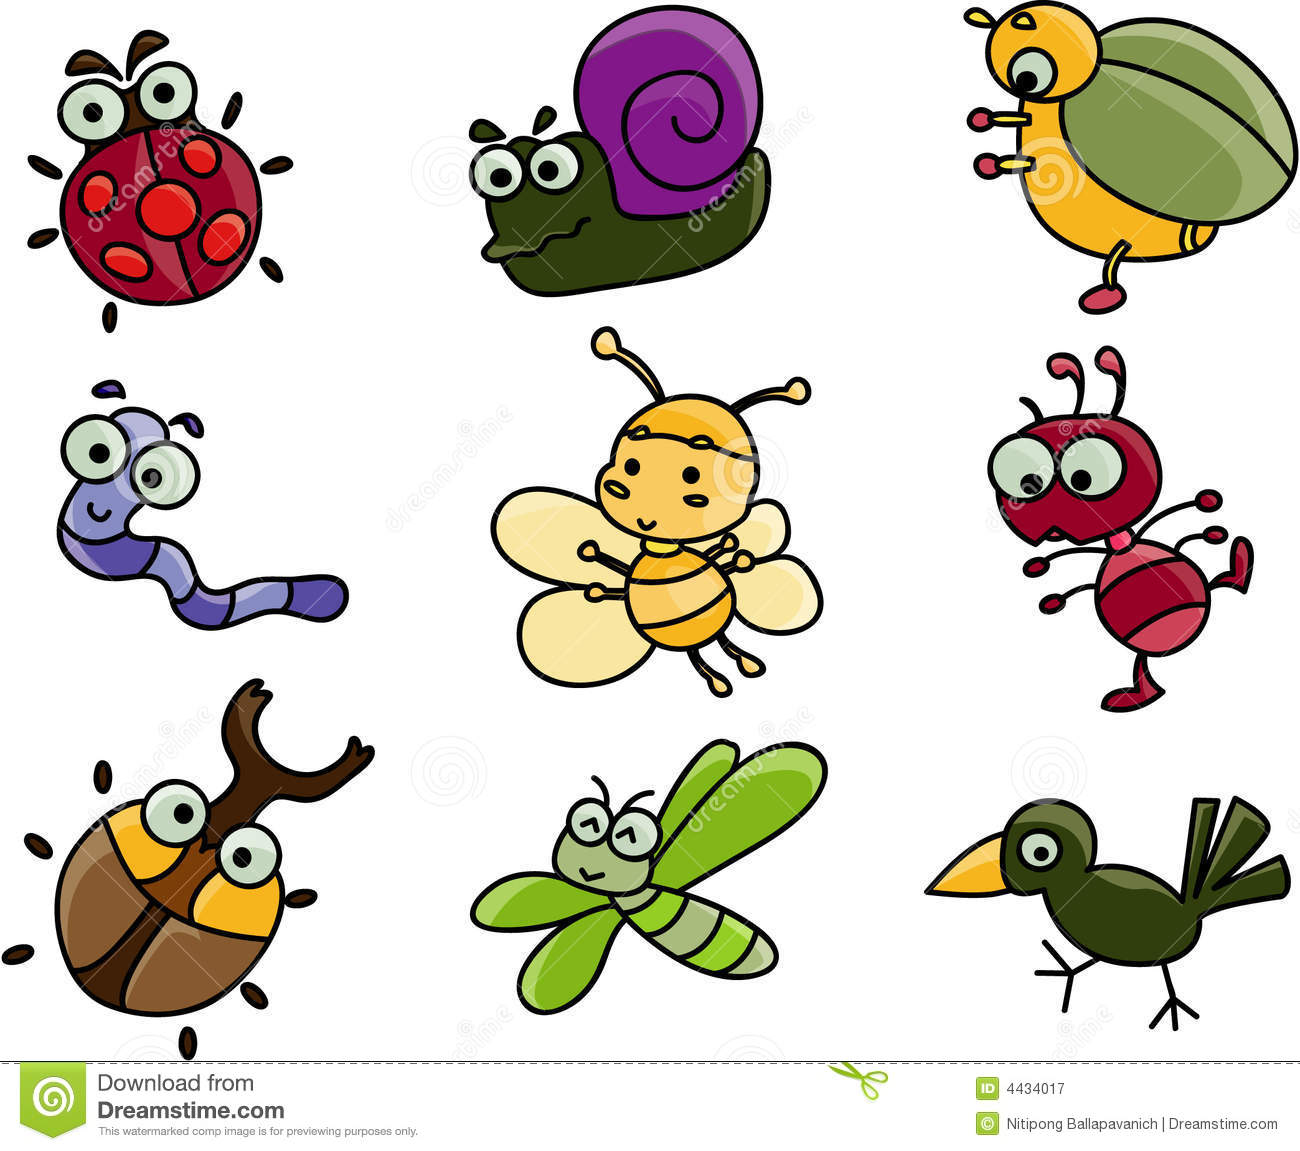 Cartoon insects clipart.